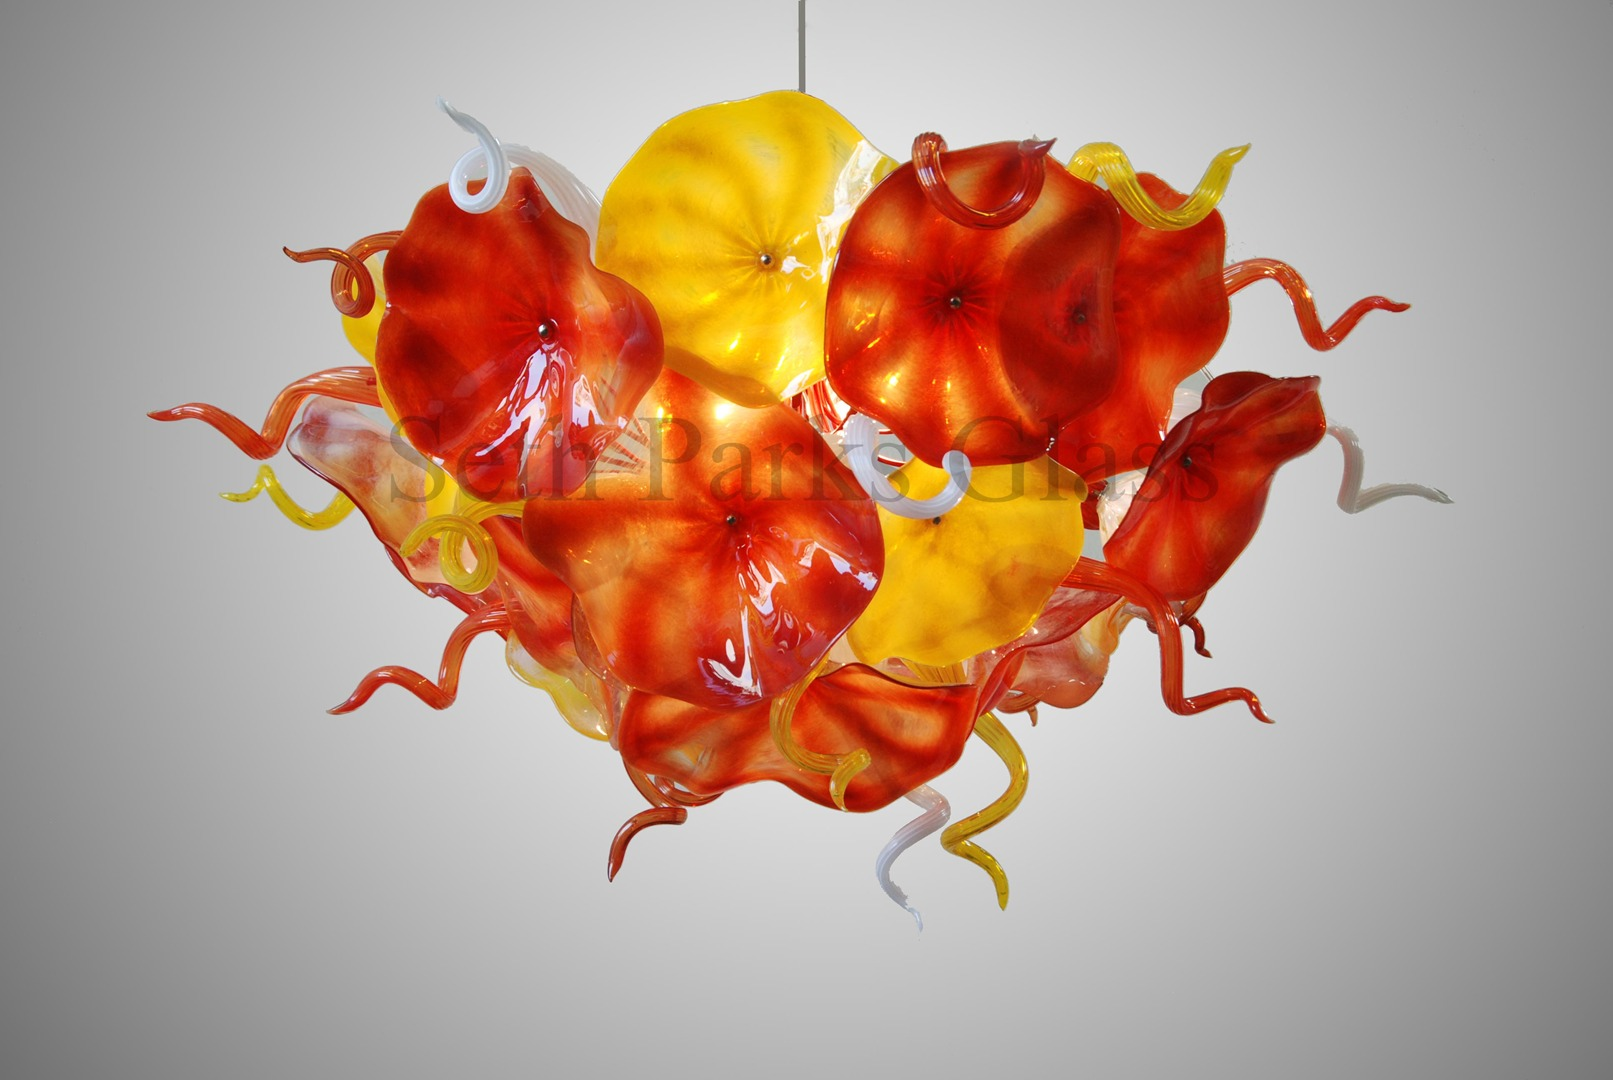 Seth parks glass blown glass chandelier seth parks glass blown glass chandelier aloadofball Choice Image